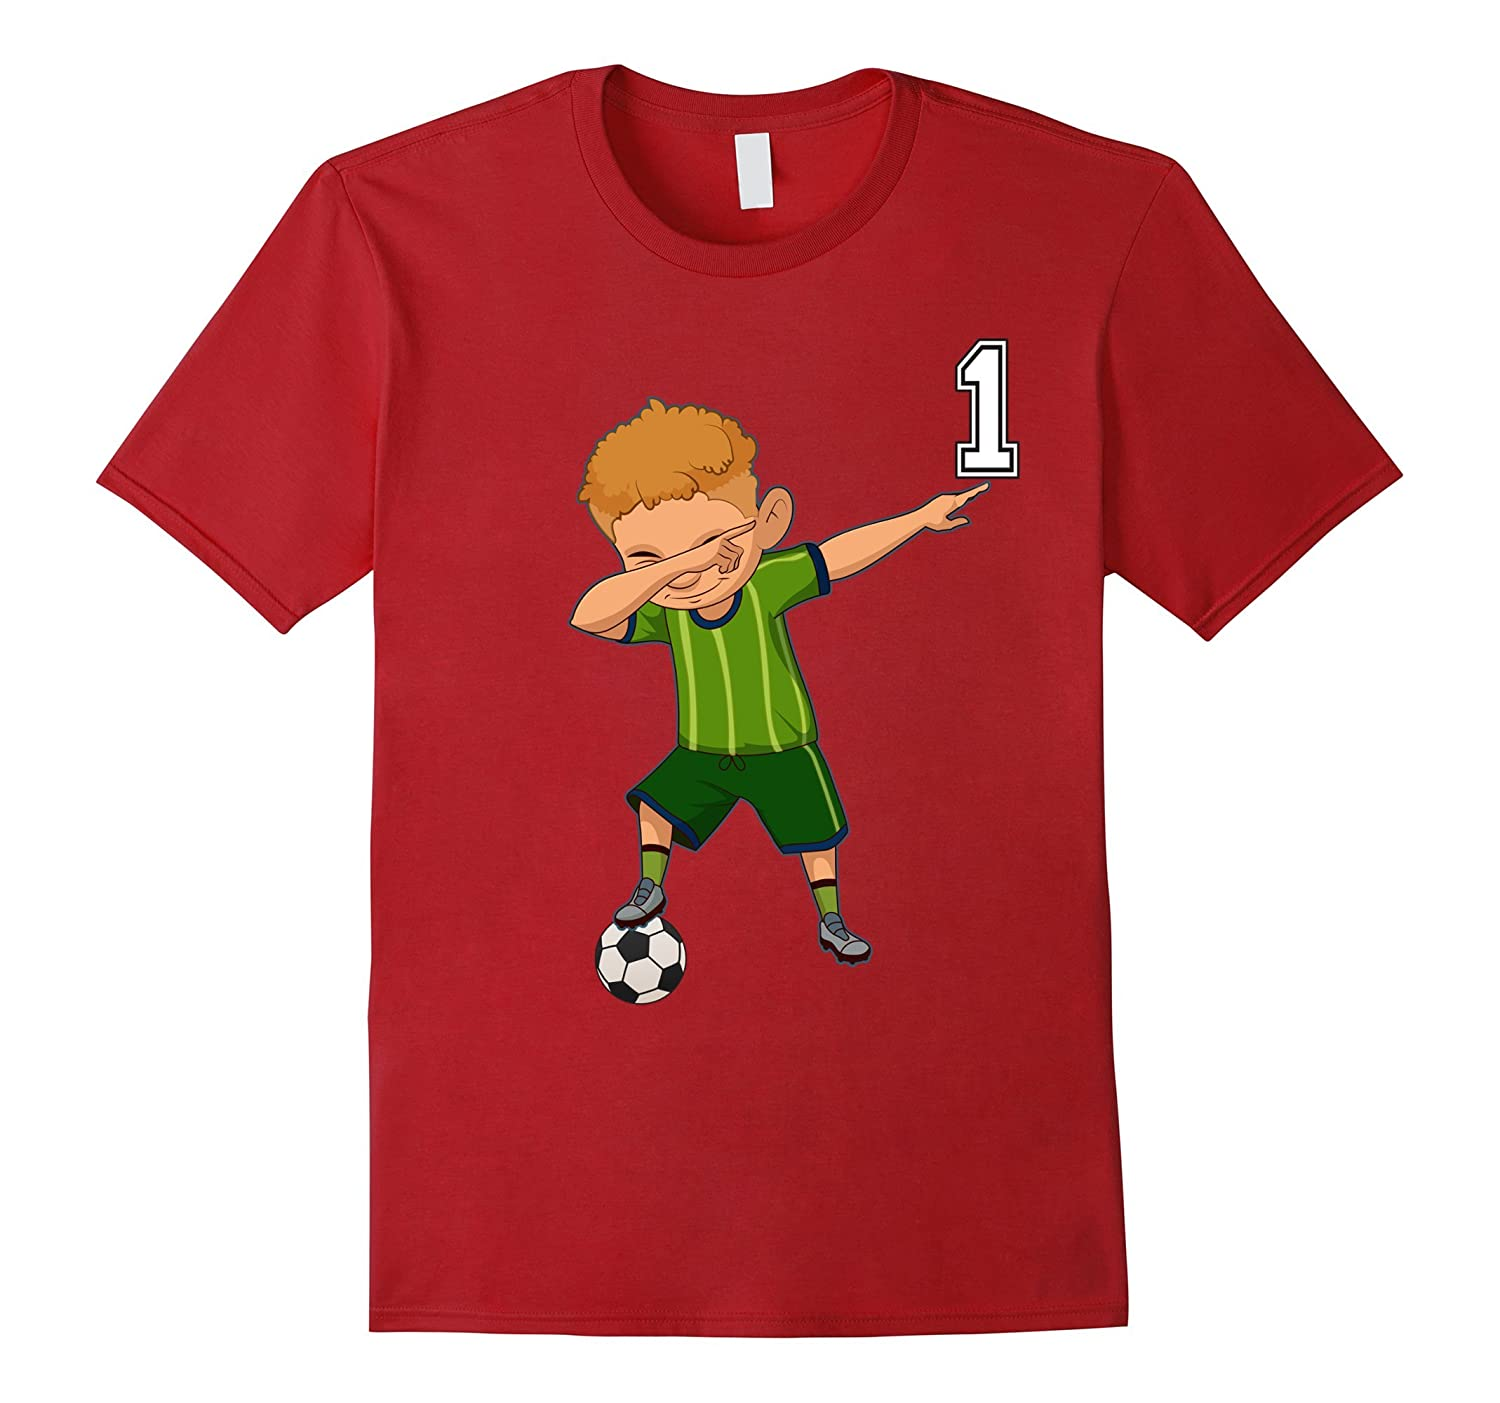 1 Soccer Shirt Boys Funny Dabbing Dab Dance Christmas Gifts-RT